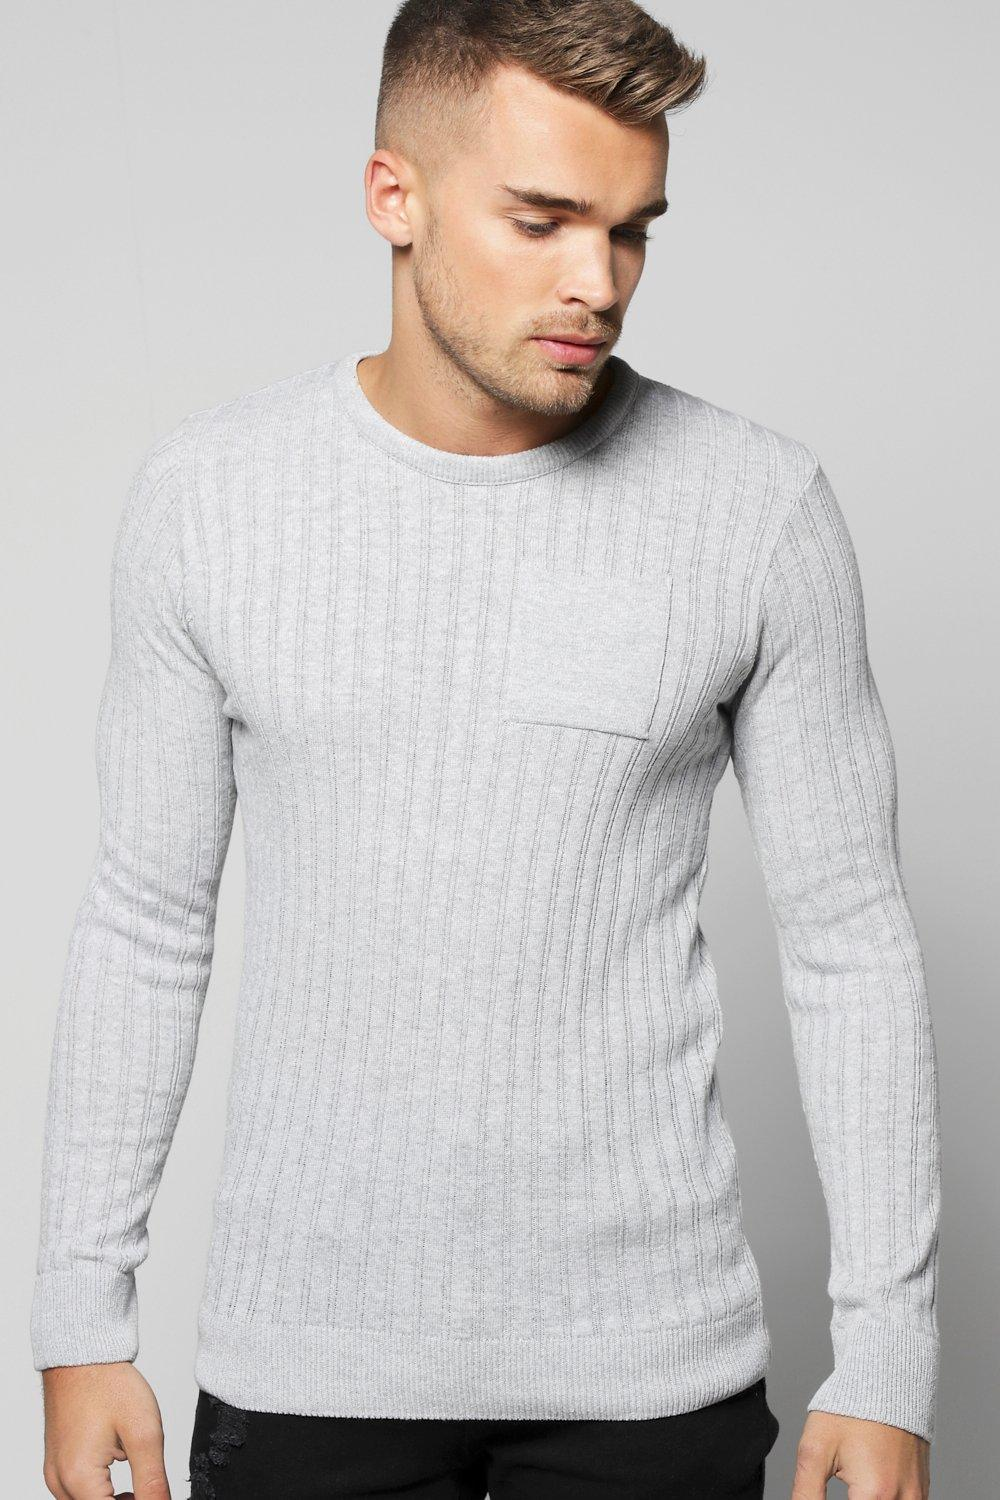 boohooMAN grey Knitted Crew Neck Jumper With Patch Pocket